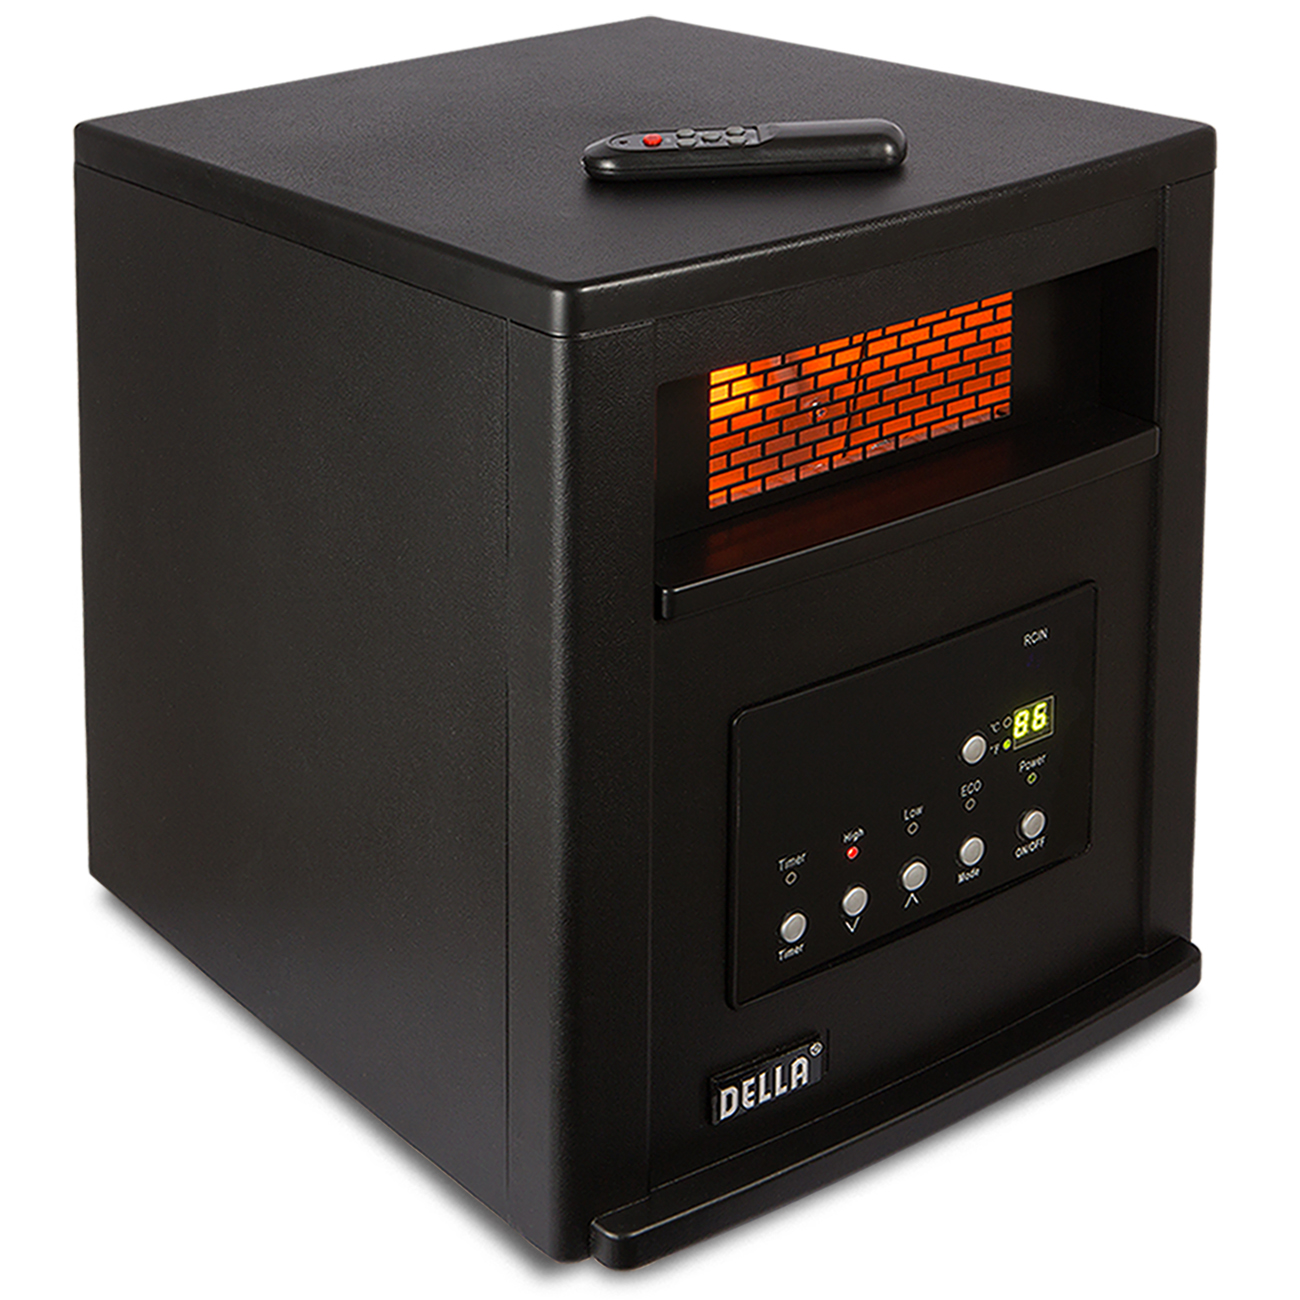 Infrared quartz portable electric space heater with remote control 1500 watts ebay - Small portable space heater paint ...